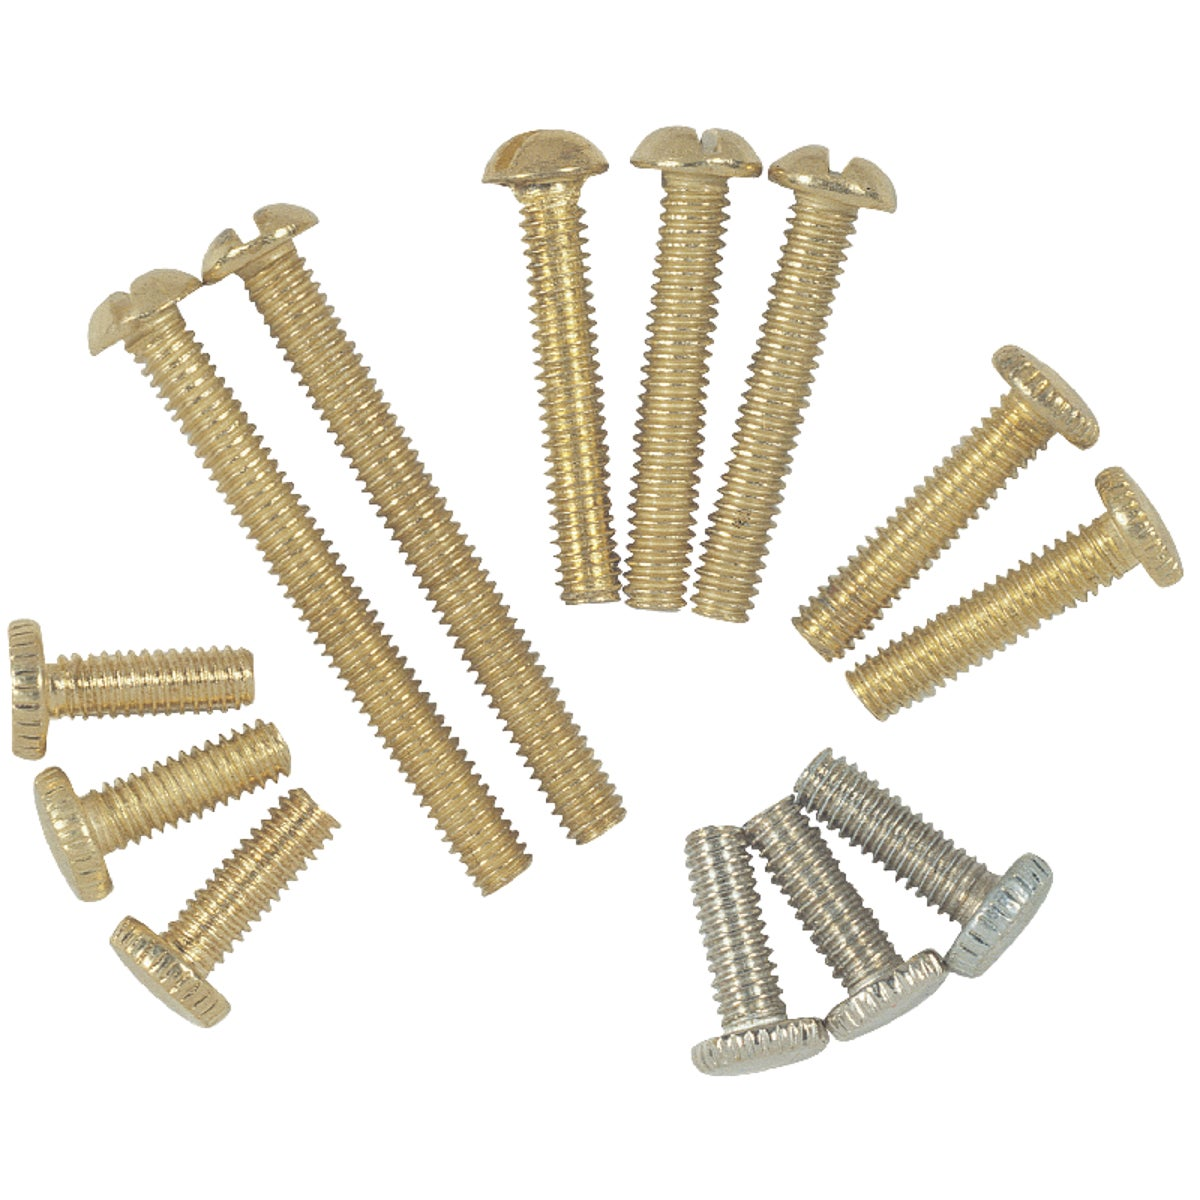 "8/32"" LAMP SCREWS"